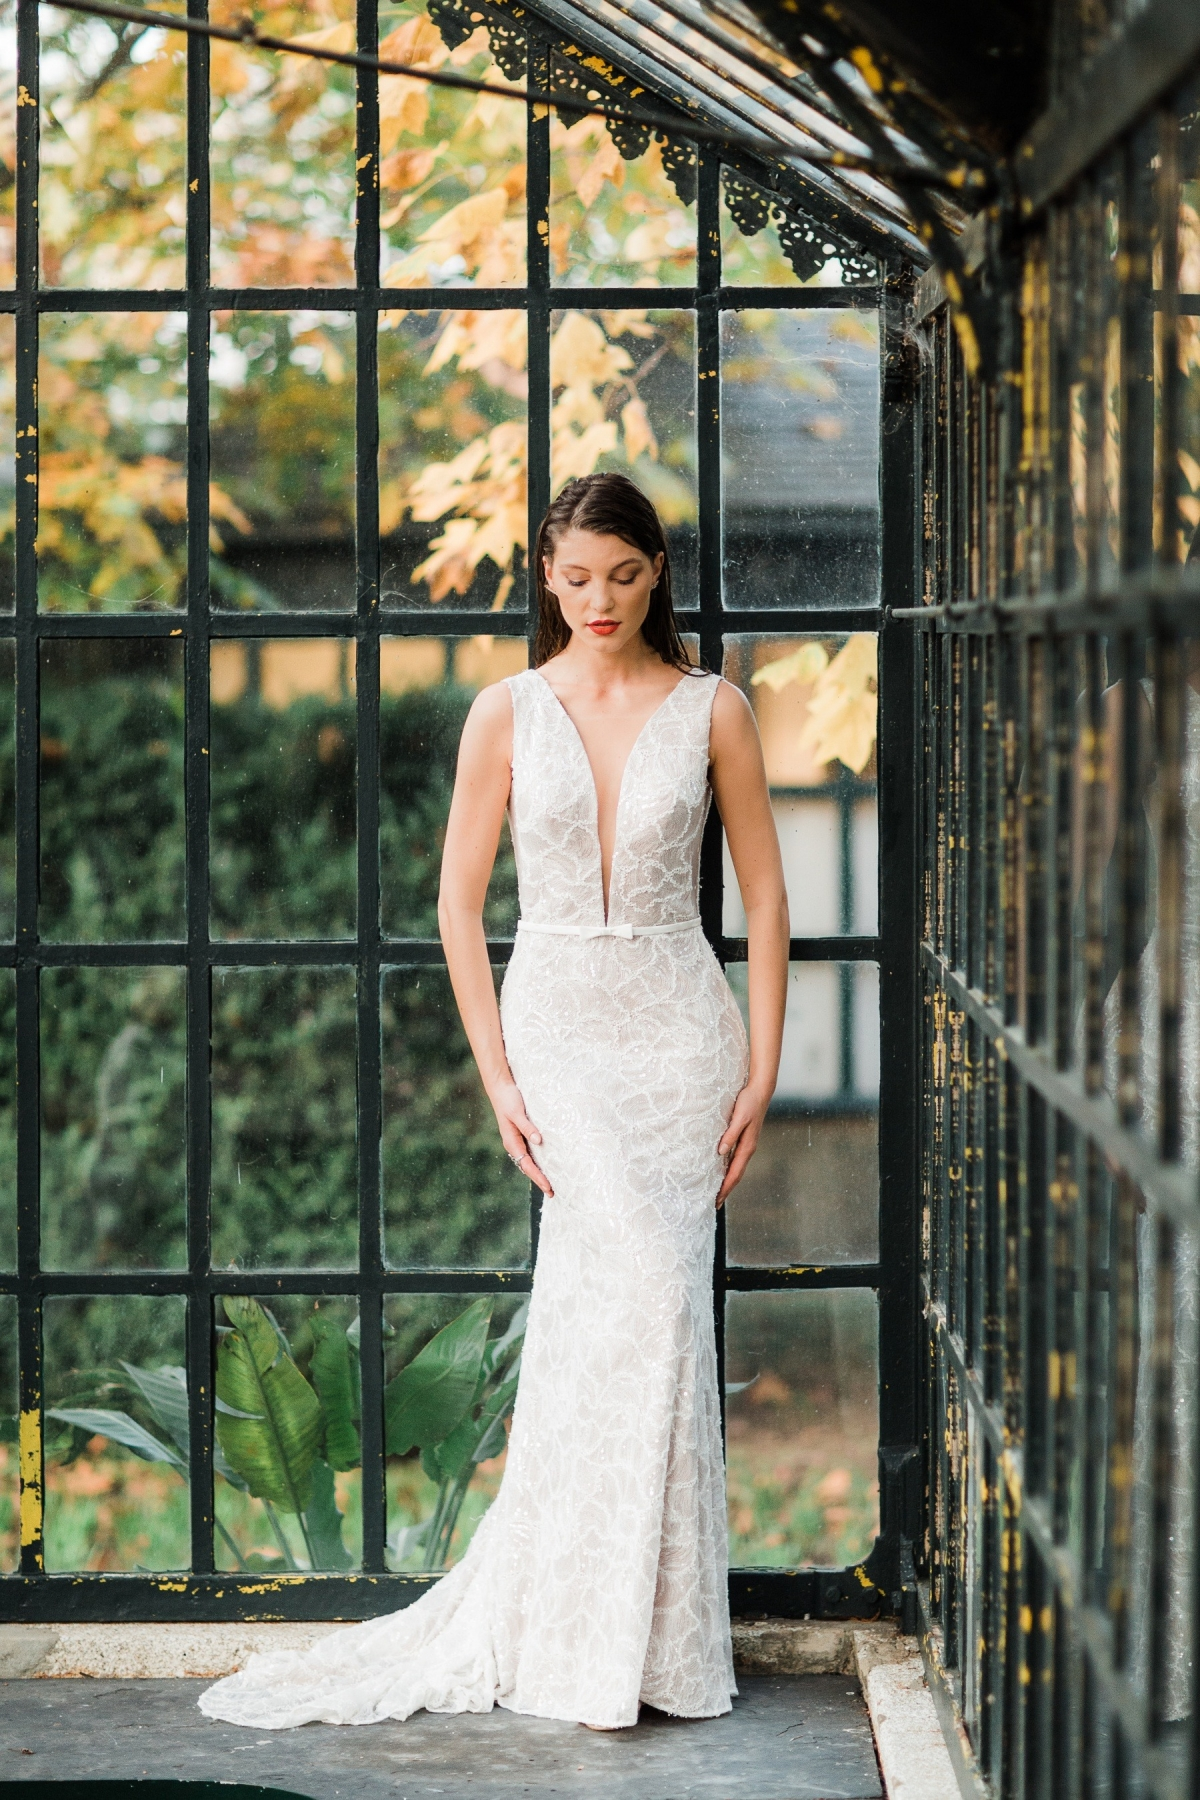 Gio Rodrigues Bridal Spring 2019 Singapore